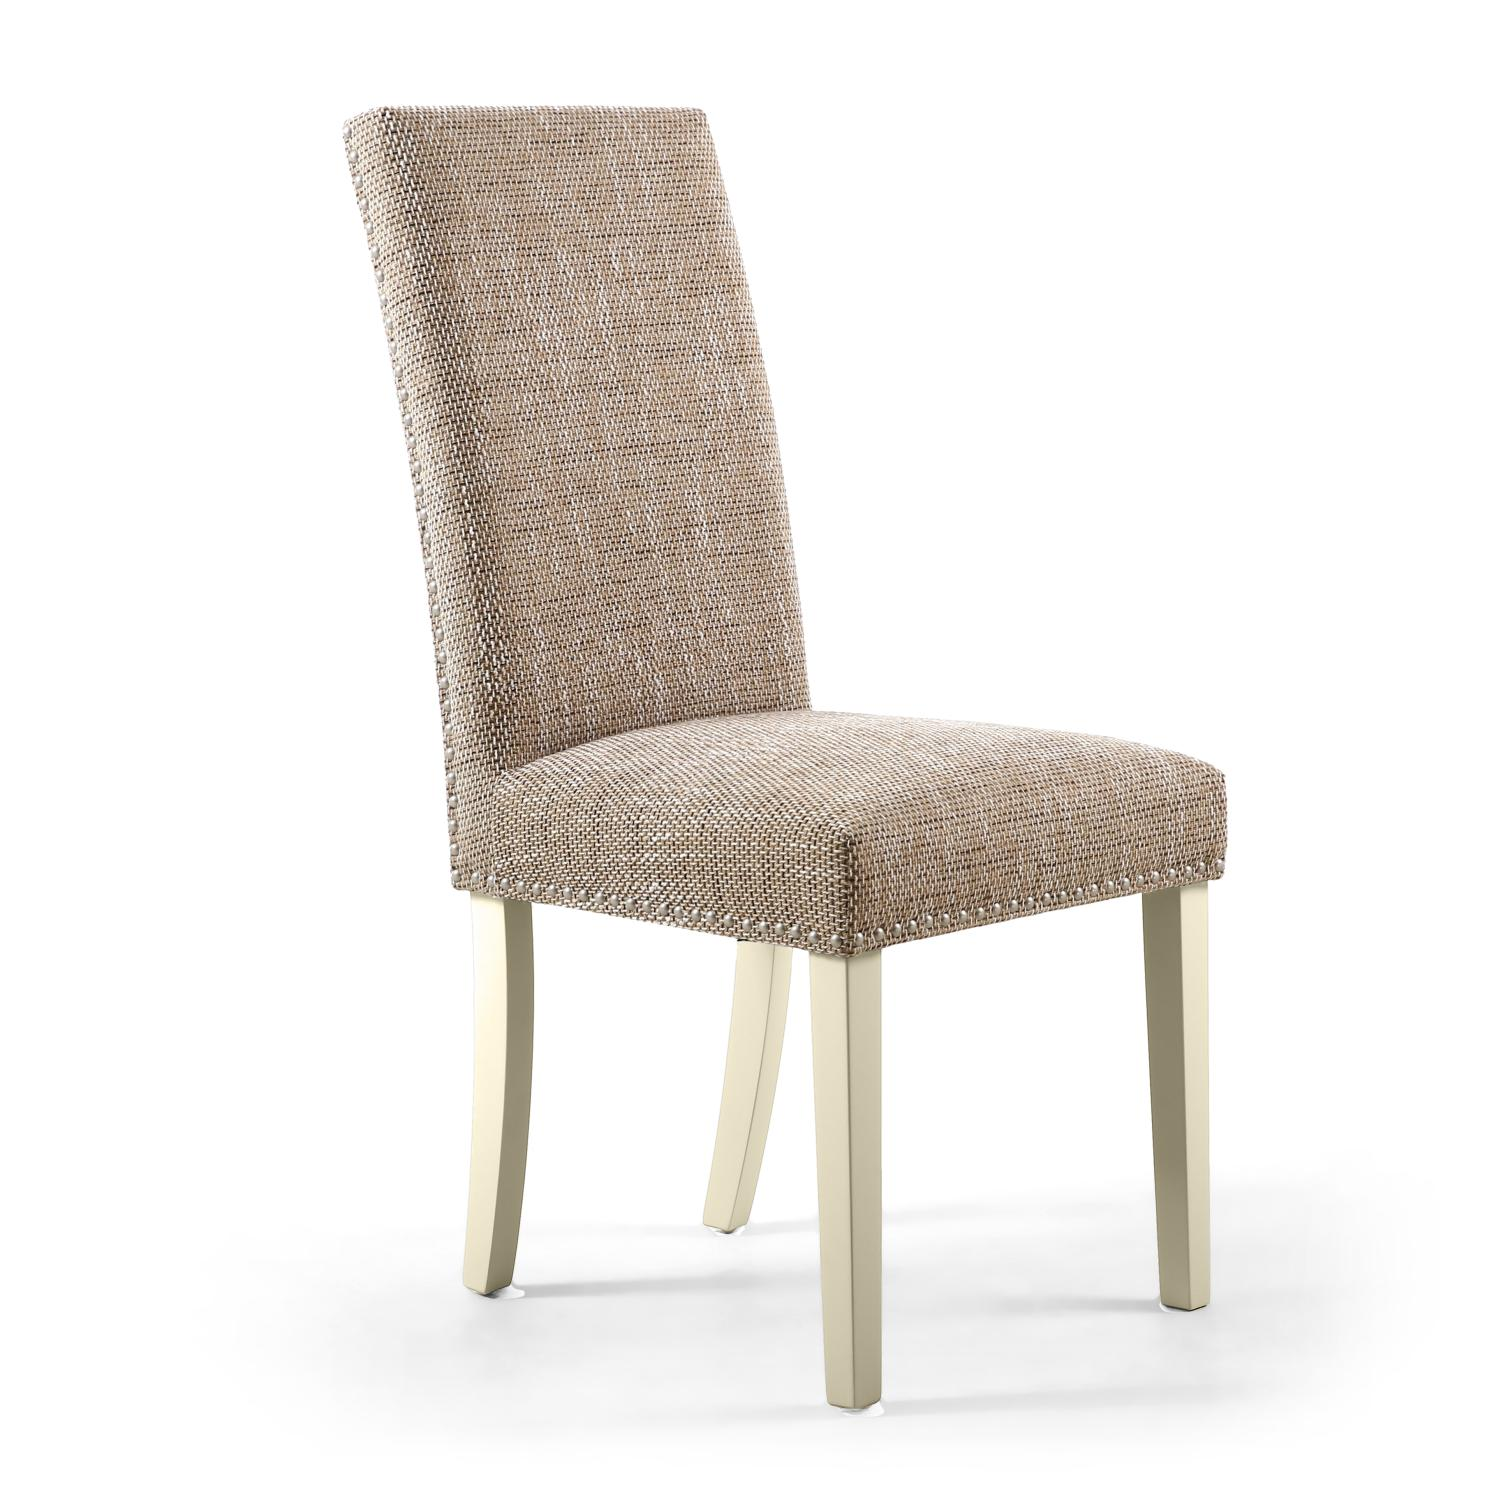 Reed Oatmeal Tweed Studded Dining Chair (Cream Legs)